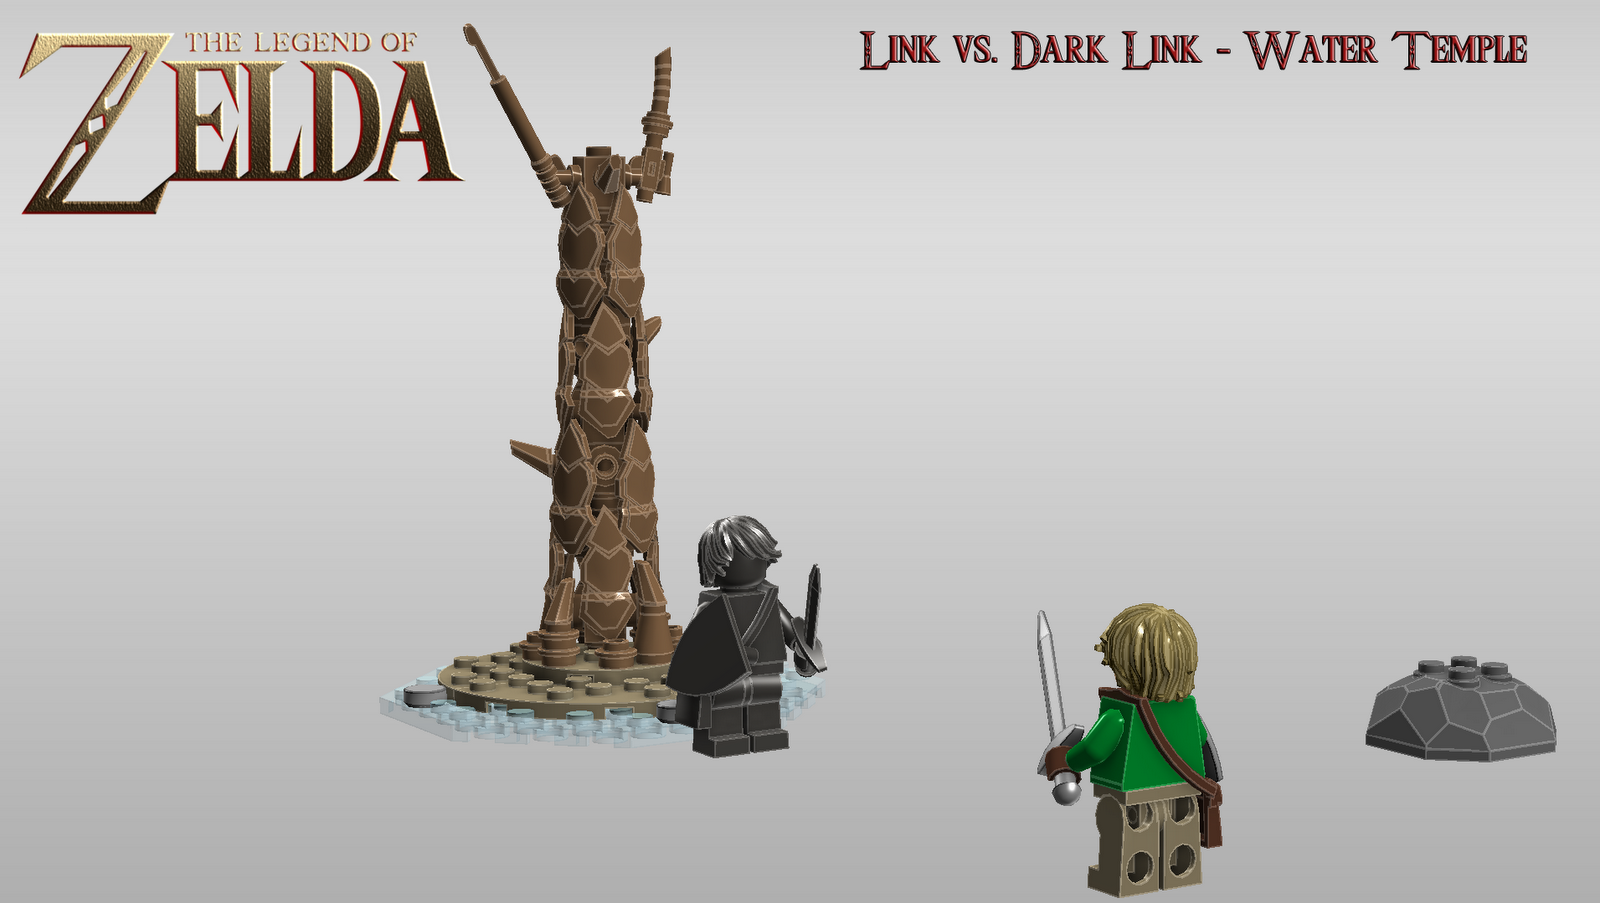 Continuum: - The Legend of Zelda LEGO Project